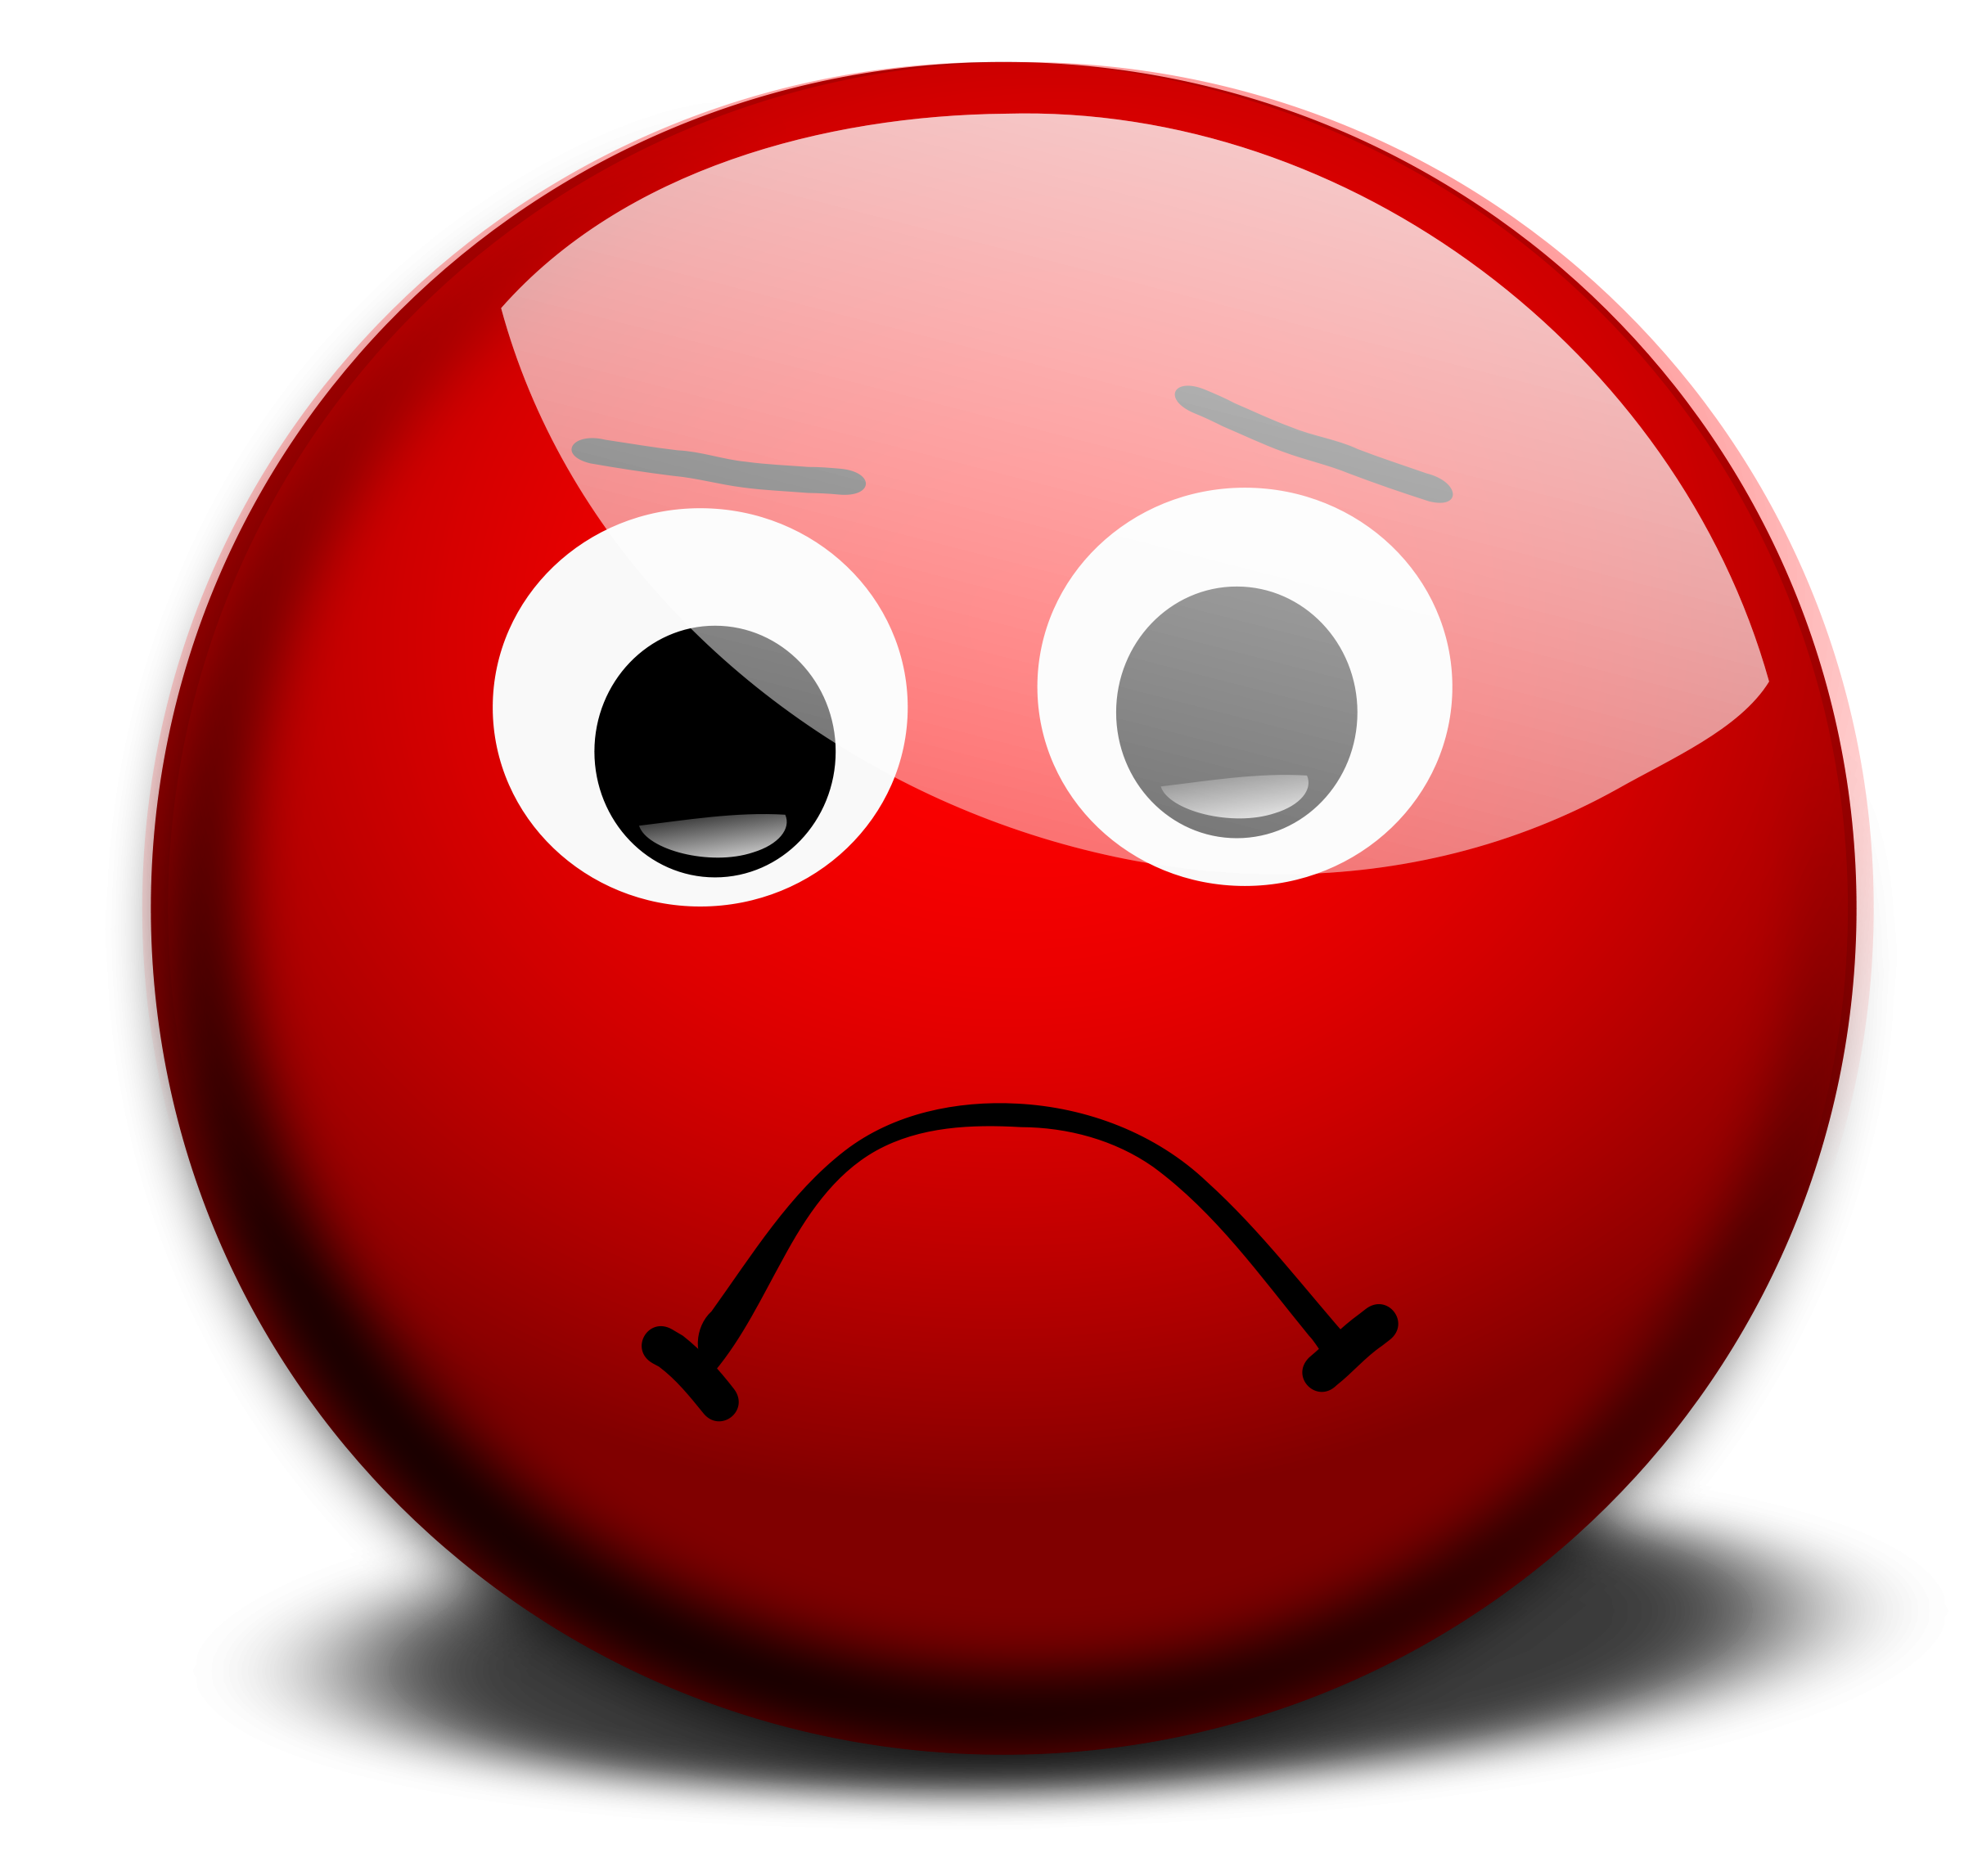 Sad Smiley Face Clip Art